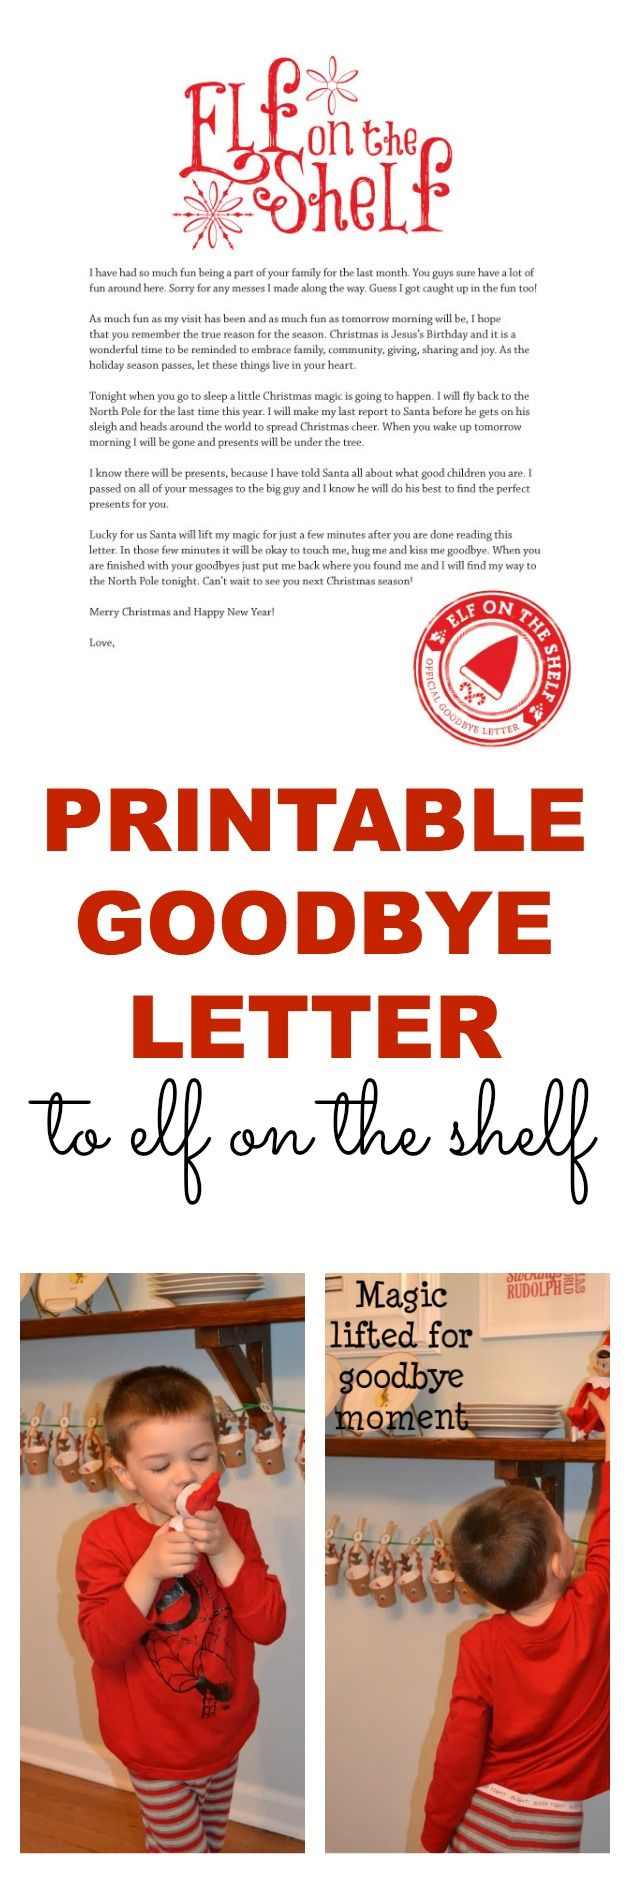 Best 25 elf goodbye letter ideas on pinterest goodbye letter a printable goodbye letter for elf on the shelf perfect way to wrap up all ccuart Images